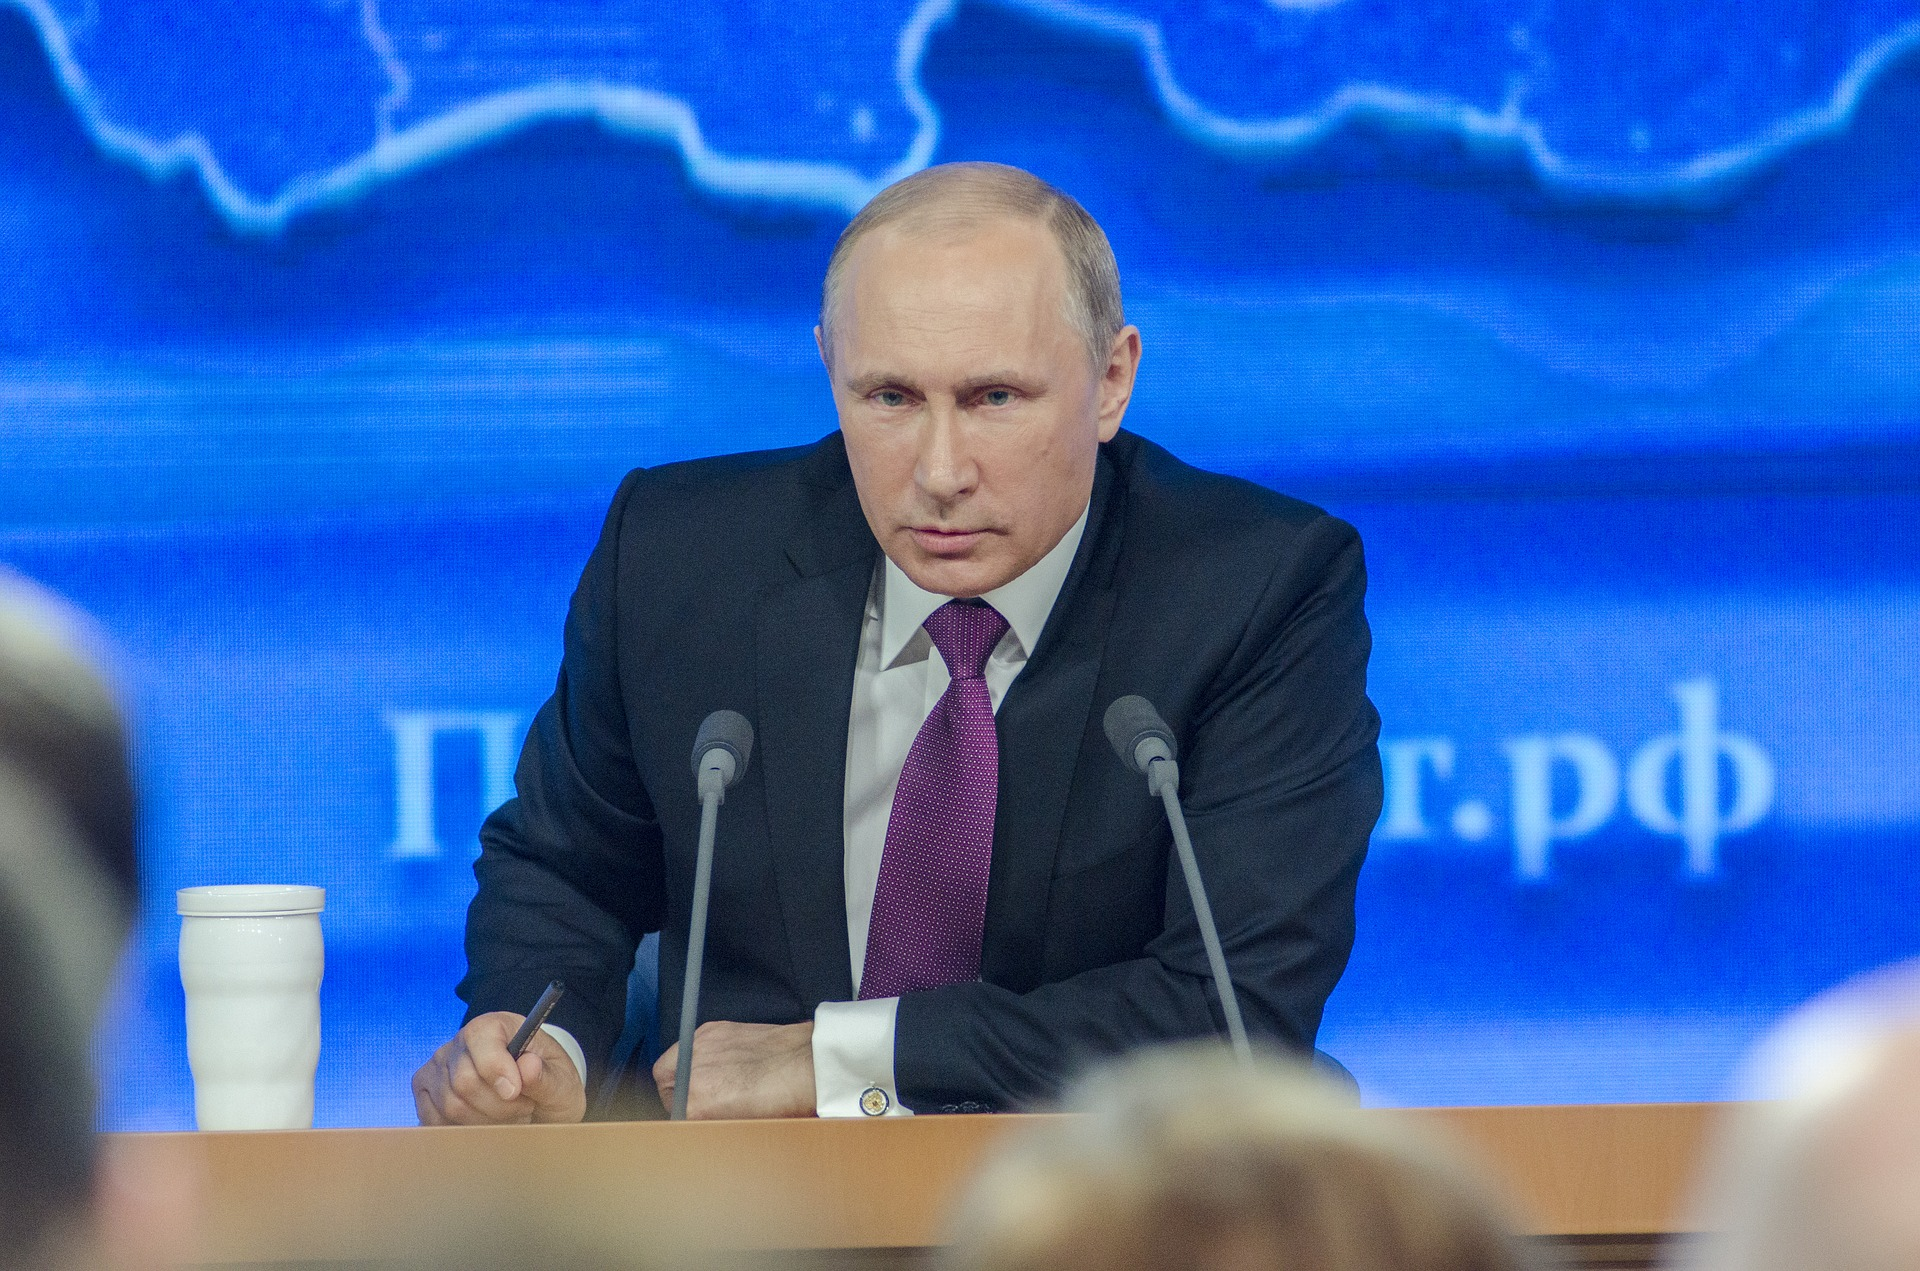 Did Vladimir Putin Say the United States' Influence in the World Is 'Waning'?